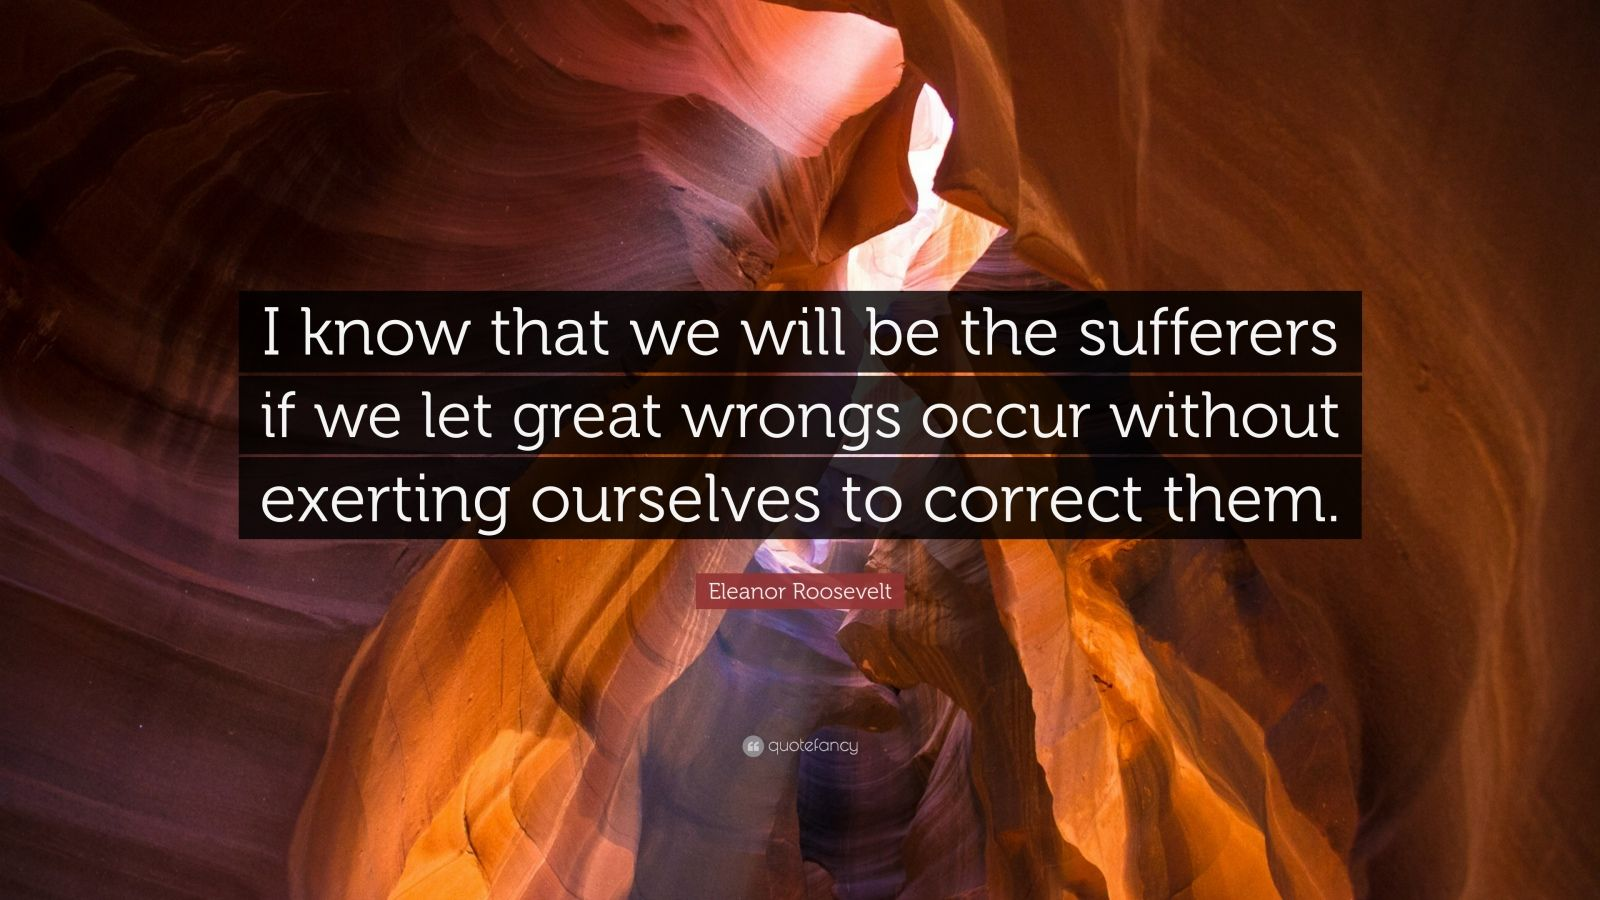 """Eleanor Roosevelt Quote: """"I know that we will be the sufferers if we let great wrongs occur without exerting ourselves to correct them."""""""